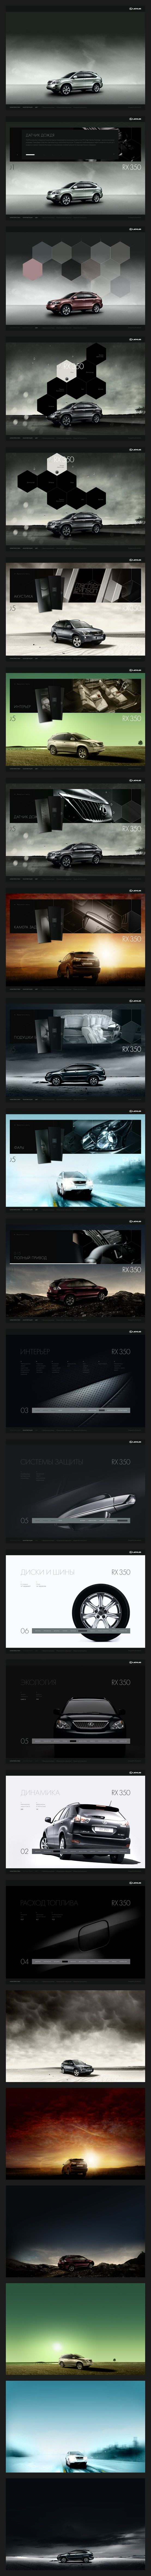 Cool Automotive Web Design on the Internet. Lexus. #automotive #webdesign @ http://www.pinterest.com/alfredchong/automotive-web-design/